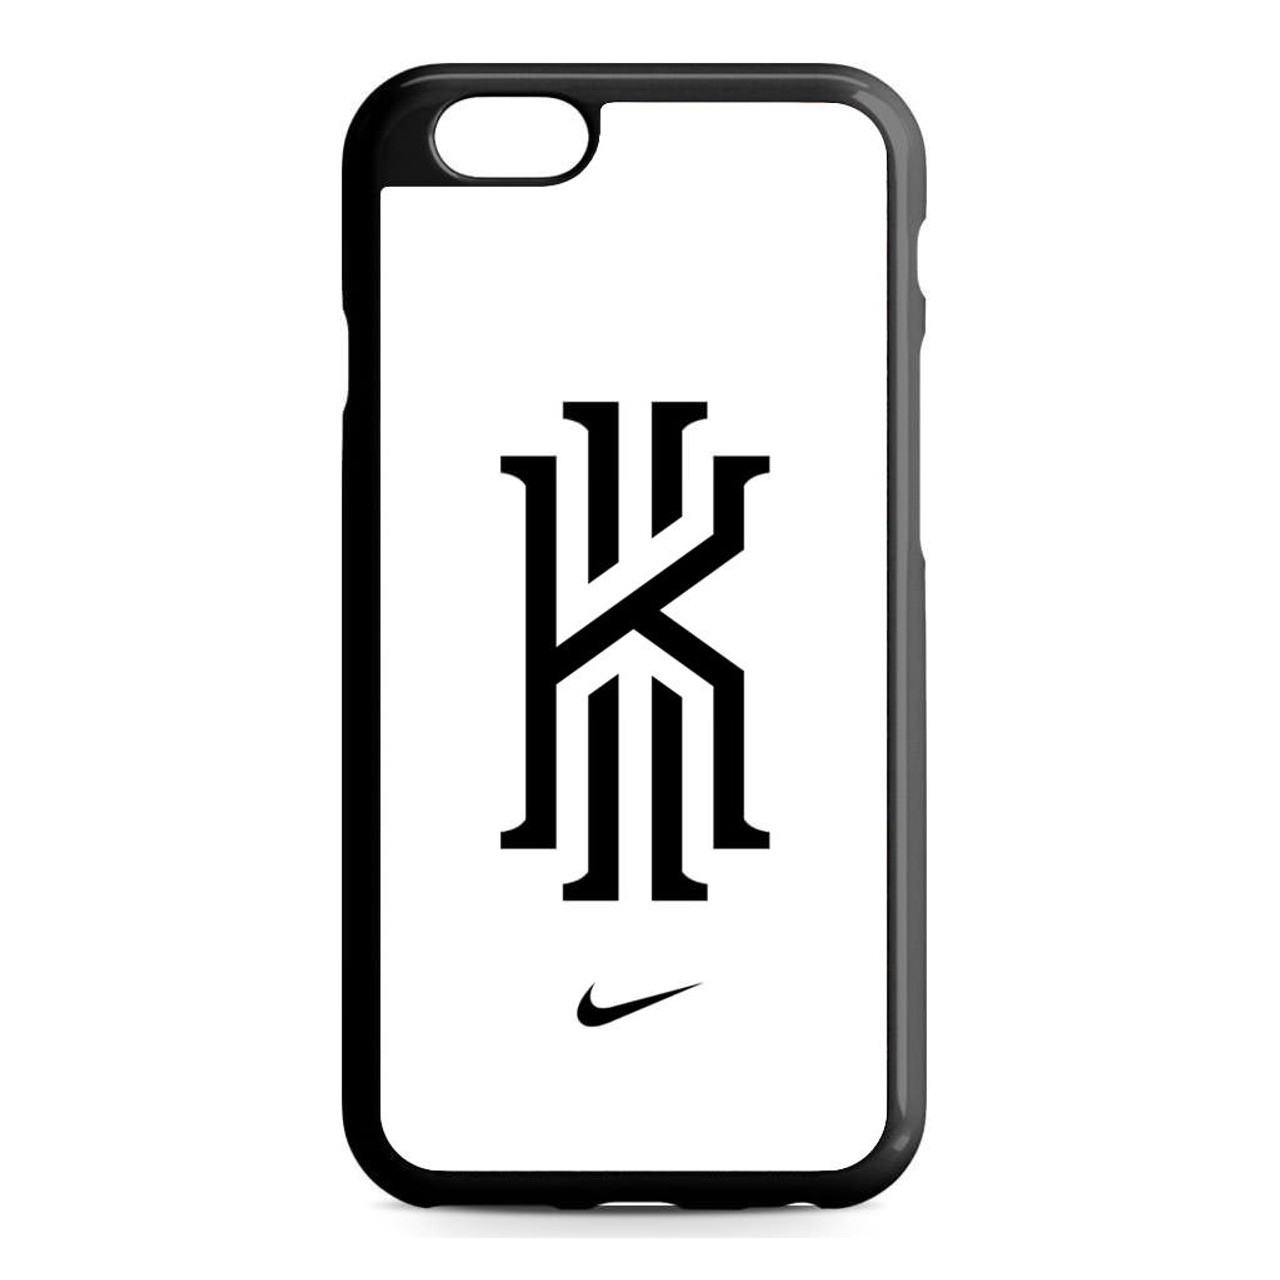 d2d599cddaed Kyrie Irving Nike Logo White1 iPhone 6 6S Case - GGIANS